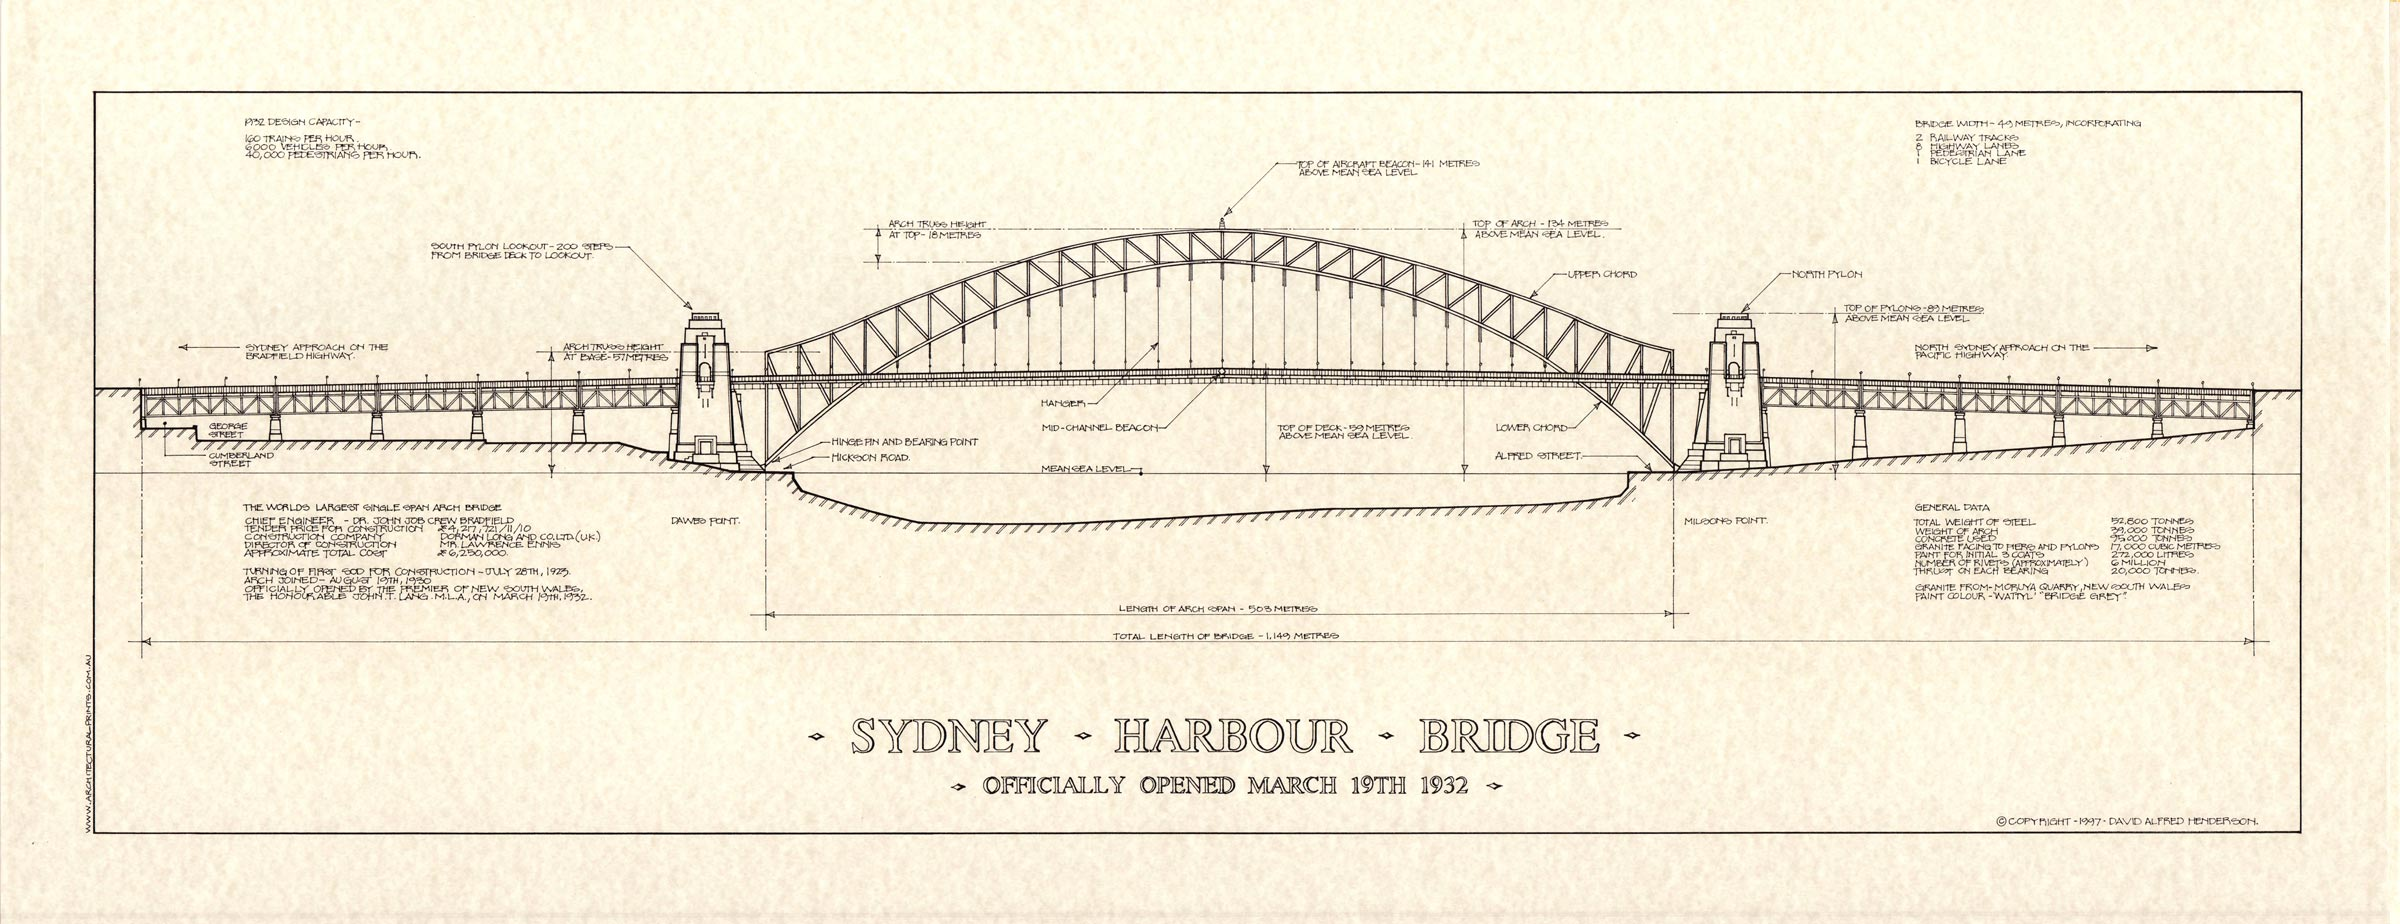 Sydney Harbour Bridge Print Architectural Prints